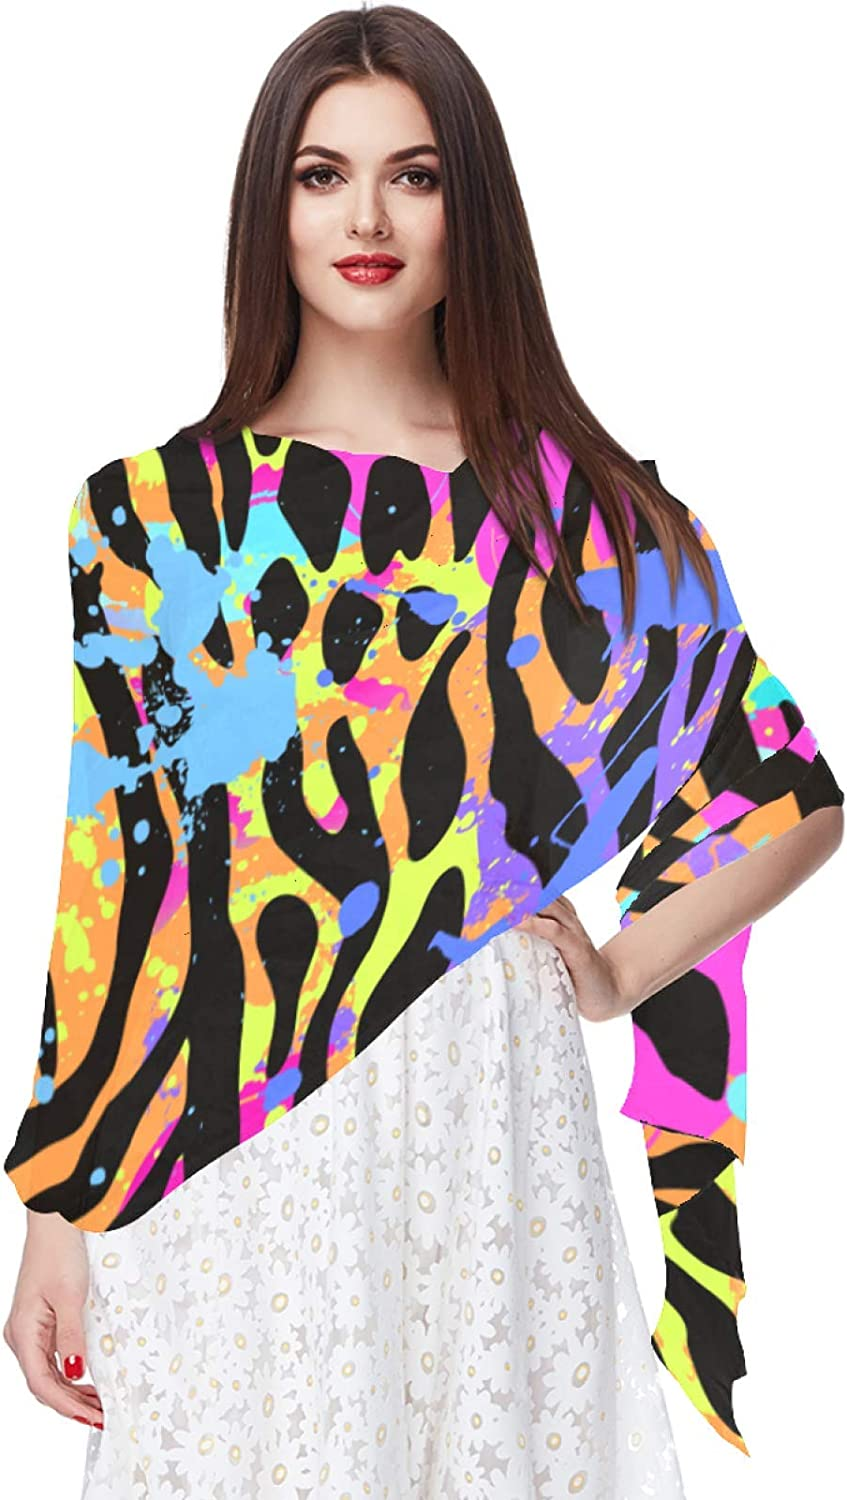 Women's Chiffon Scarf Lightweight Fashion Sheer Scarfs Shawl Wrap Scarves,Colorful Abstract Animal Leapoard Pattern